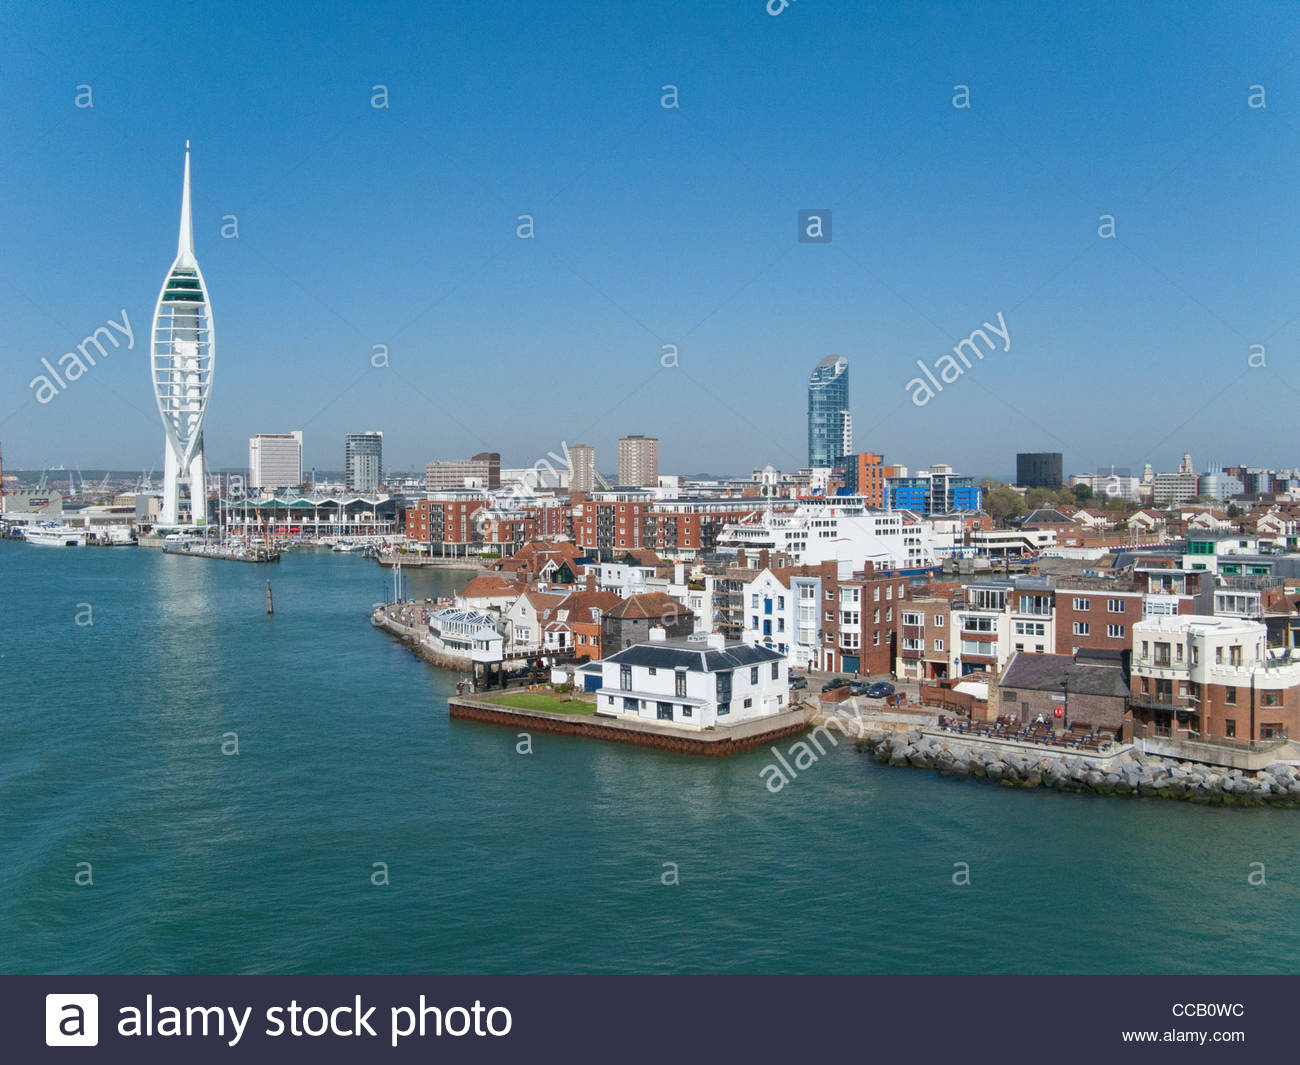 Cityscape of Portsmouth with modern spire in background - Stock Image